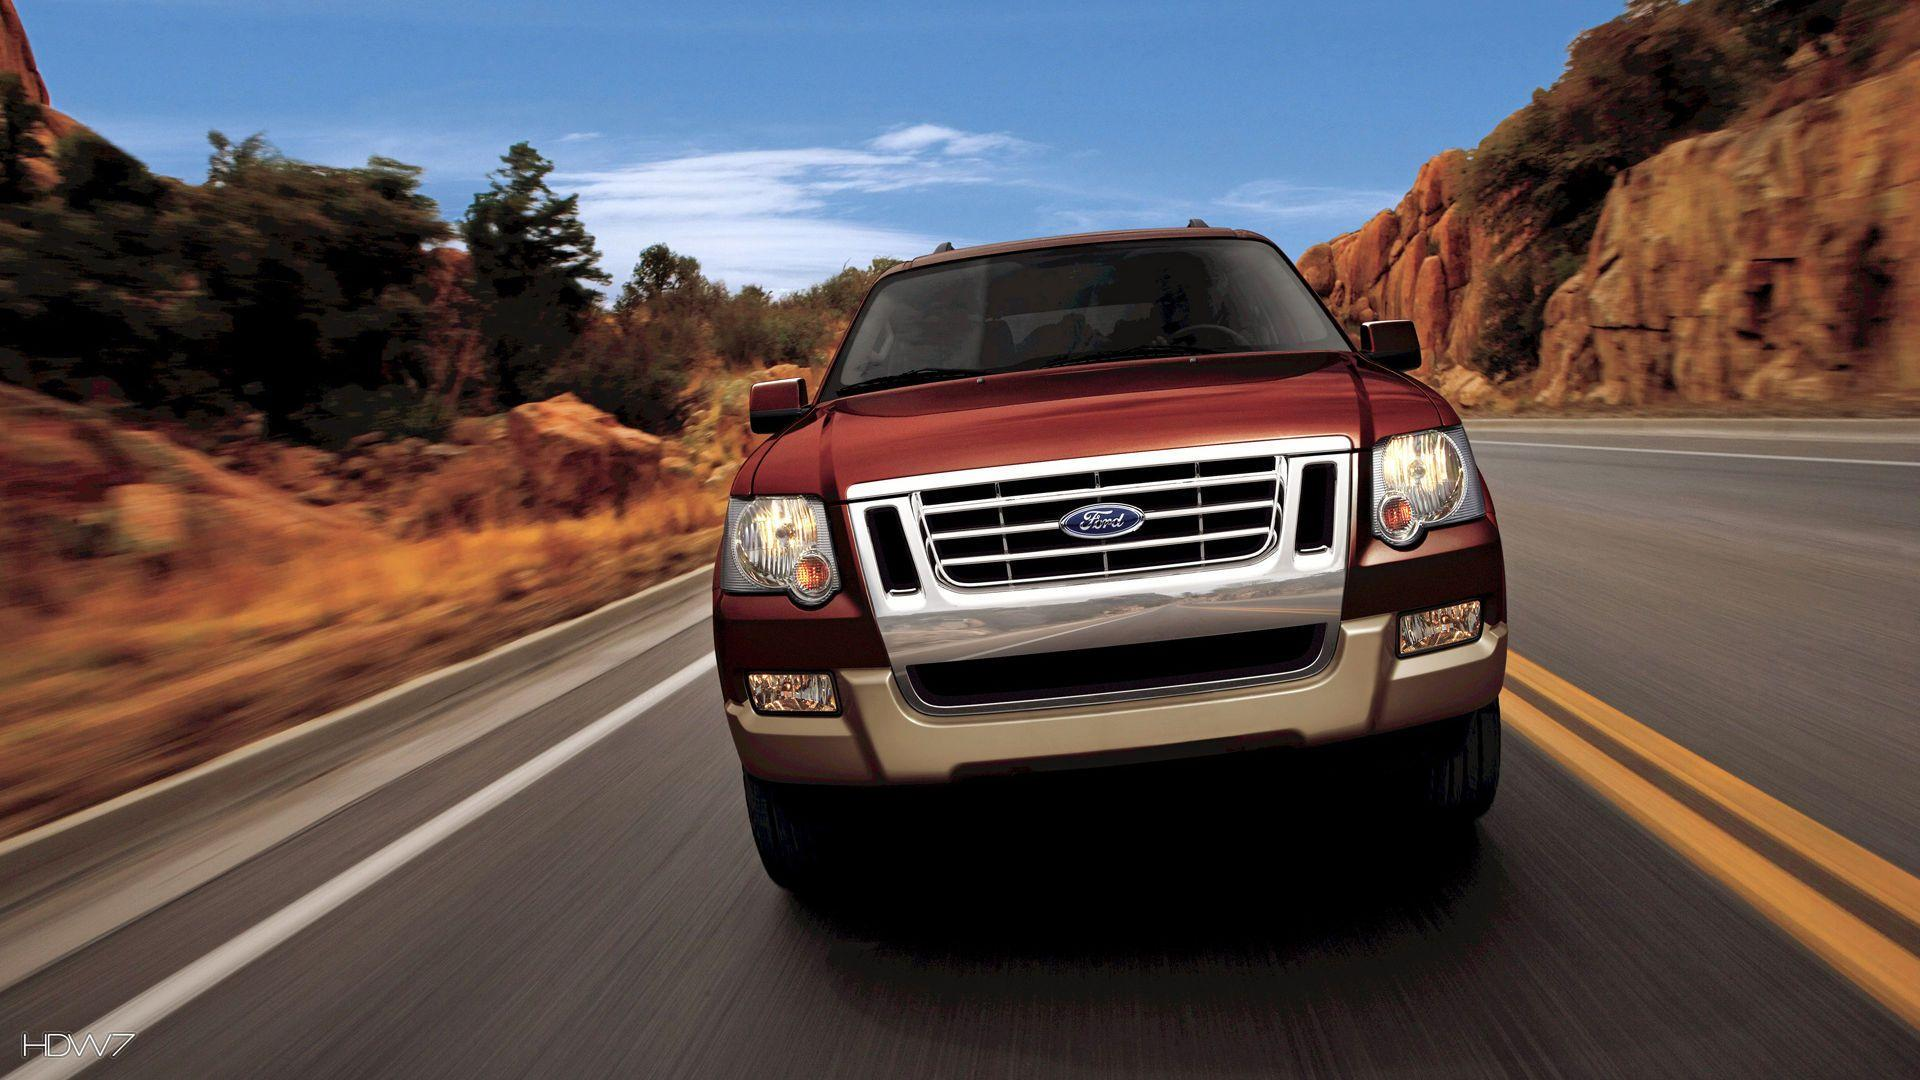 Ford Explorer Wallpapers 18